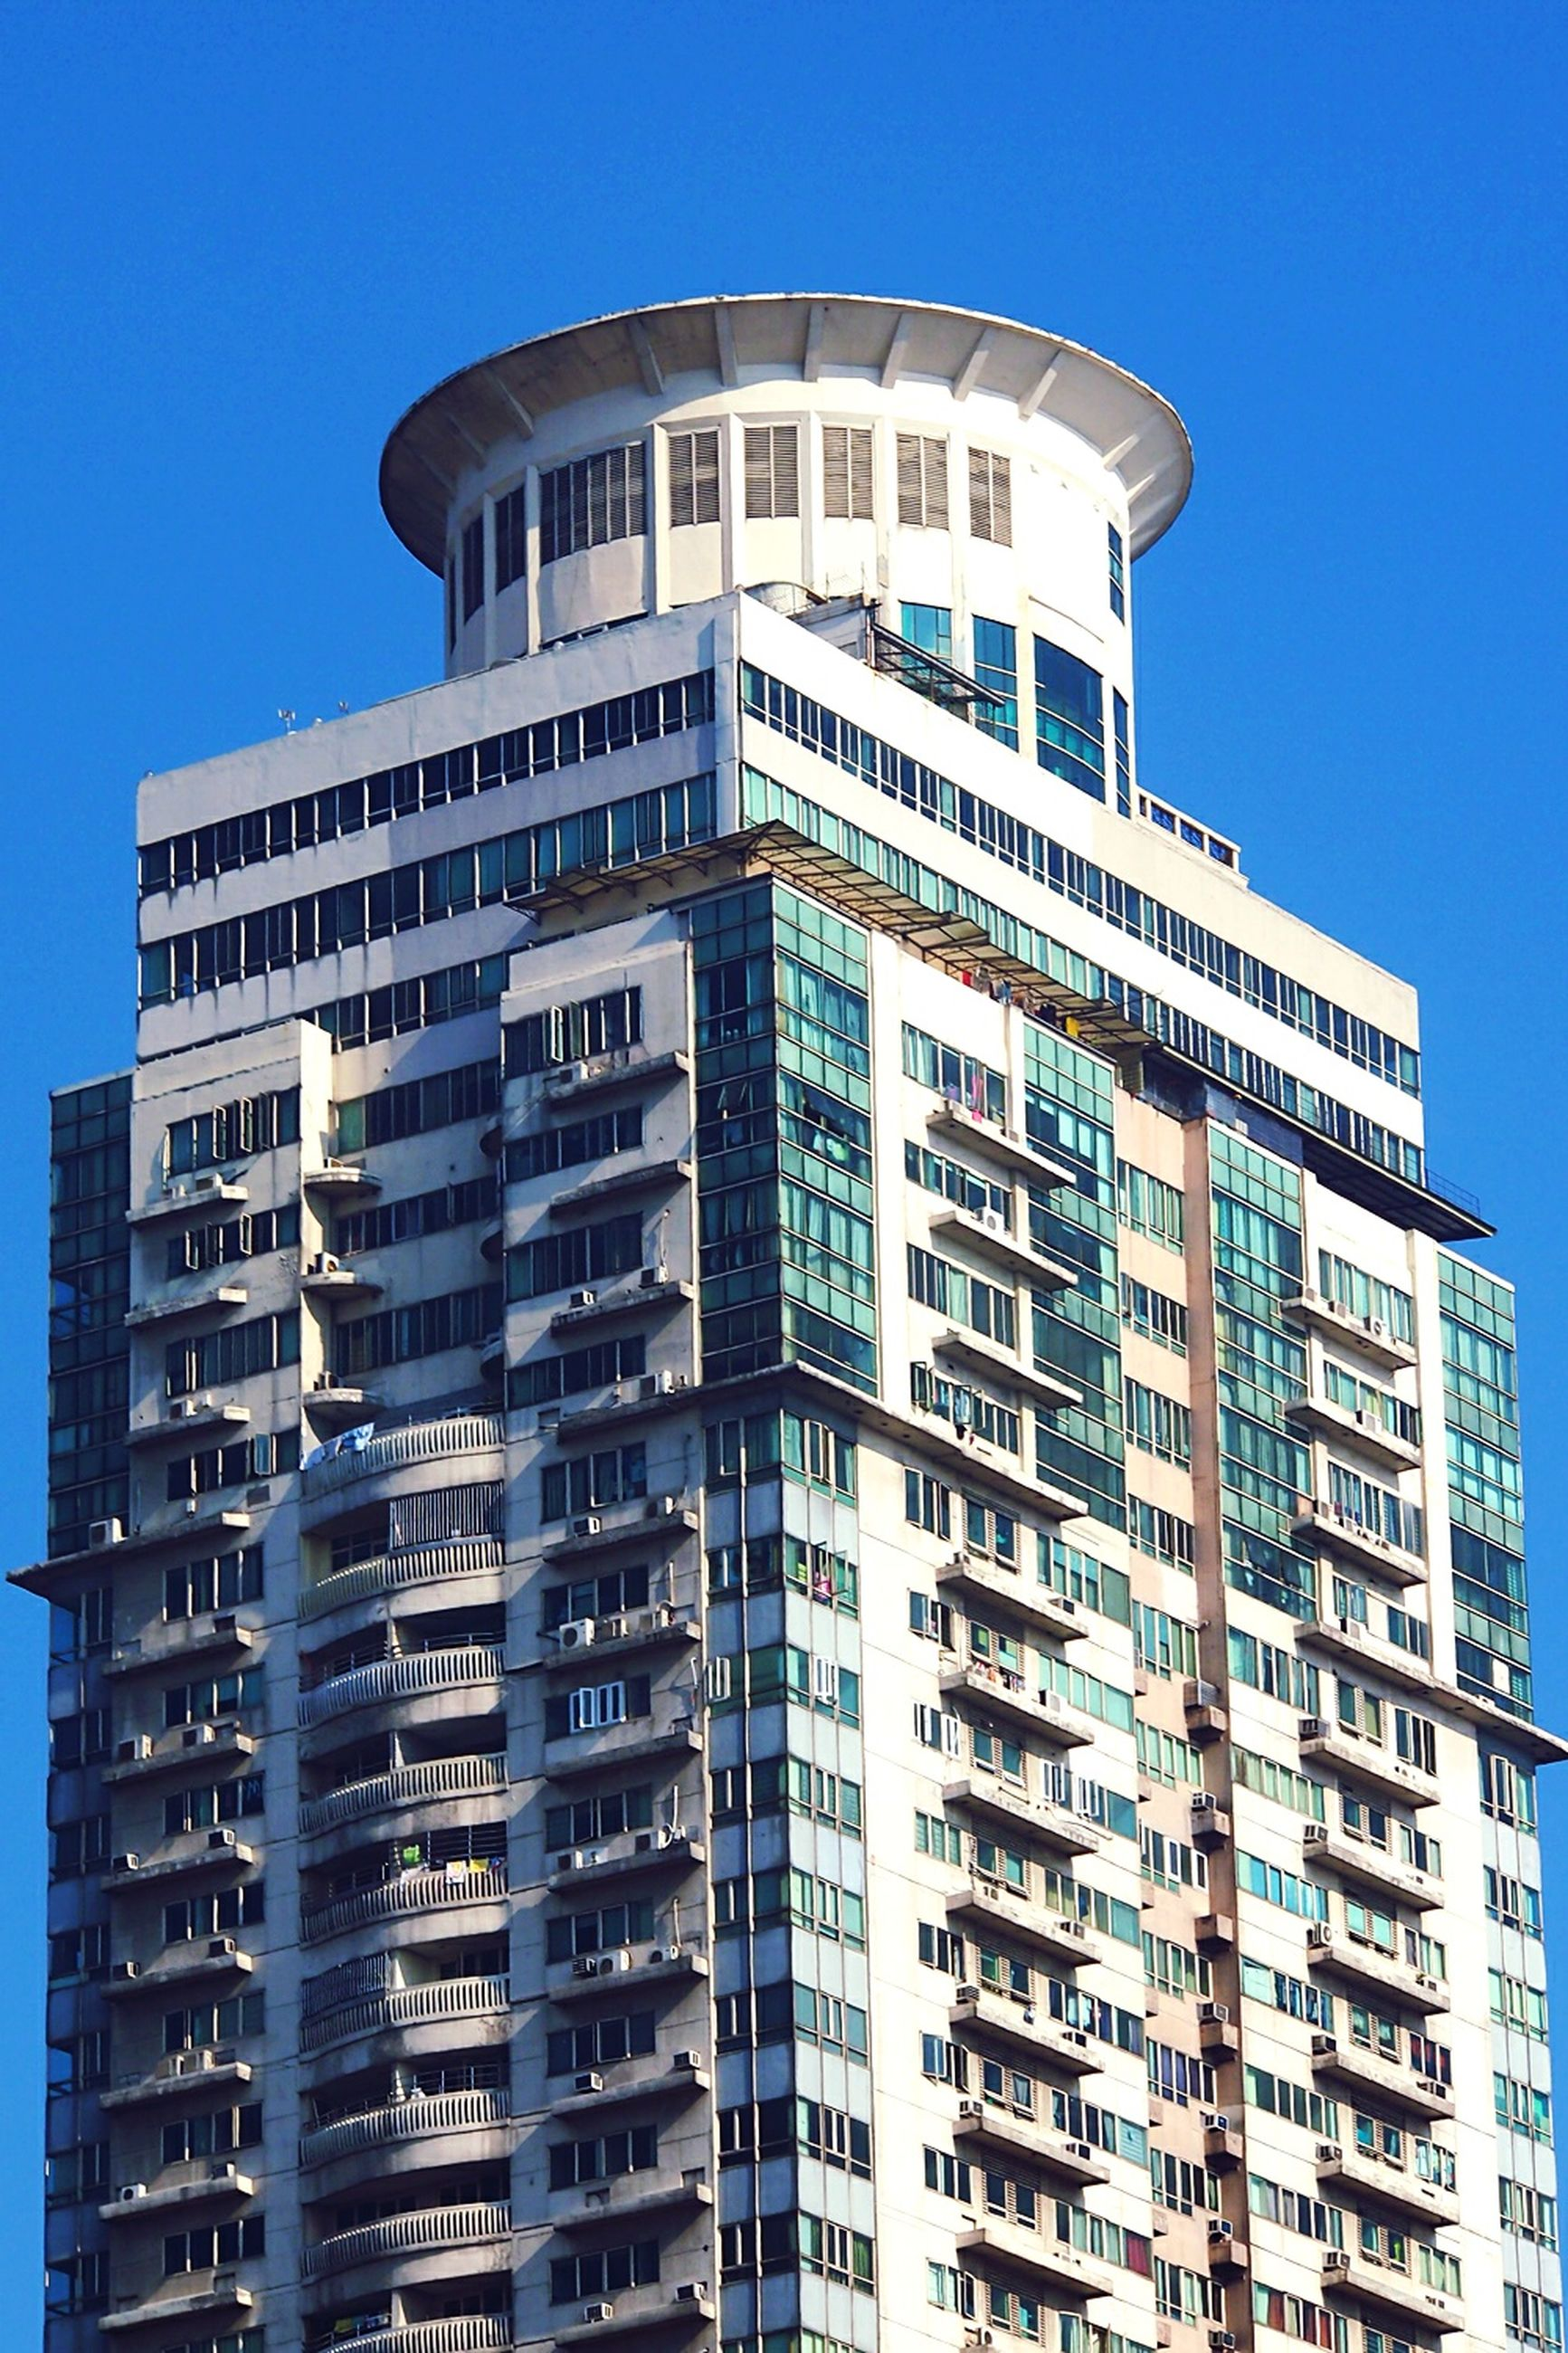 building exterior, architecture, built structure, low angle view, clear sky, blue, window, building, city, residential building, modern, residential structure, office building, day, sunlight, outdoors, apartment, tall - high, no people, balcony